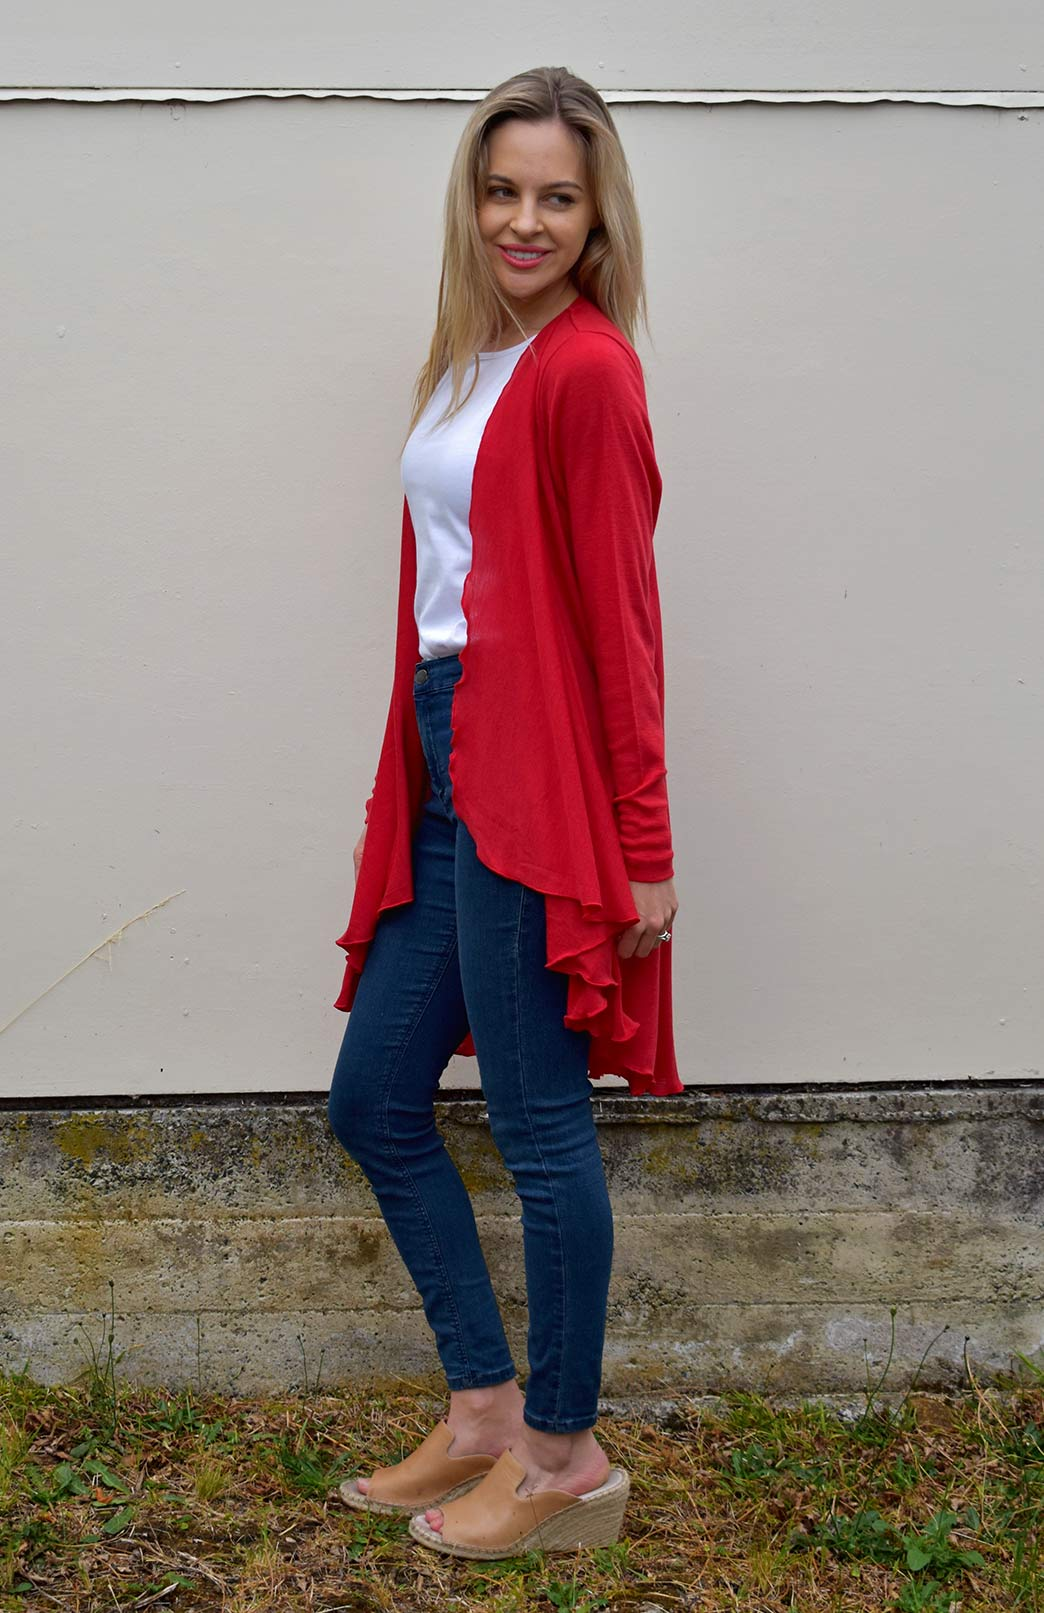 Swing Cardigan - Women's Flame Red Long Sleeved Wrap Around Merino Wool Swing Cardigan - Smitten Merino Tasmania Australia